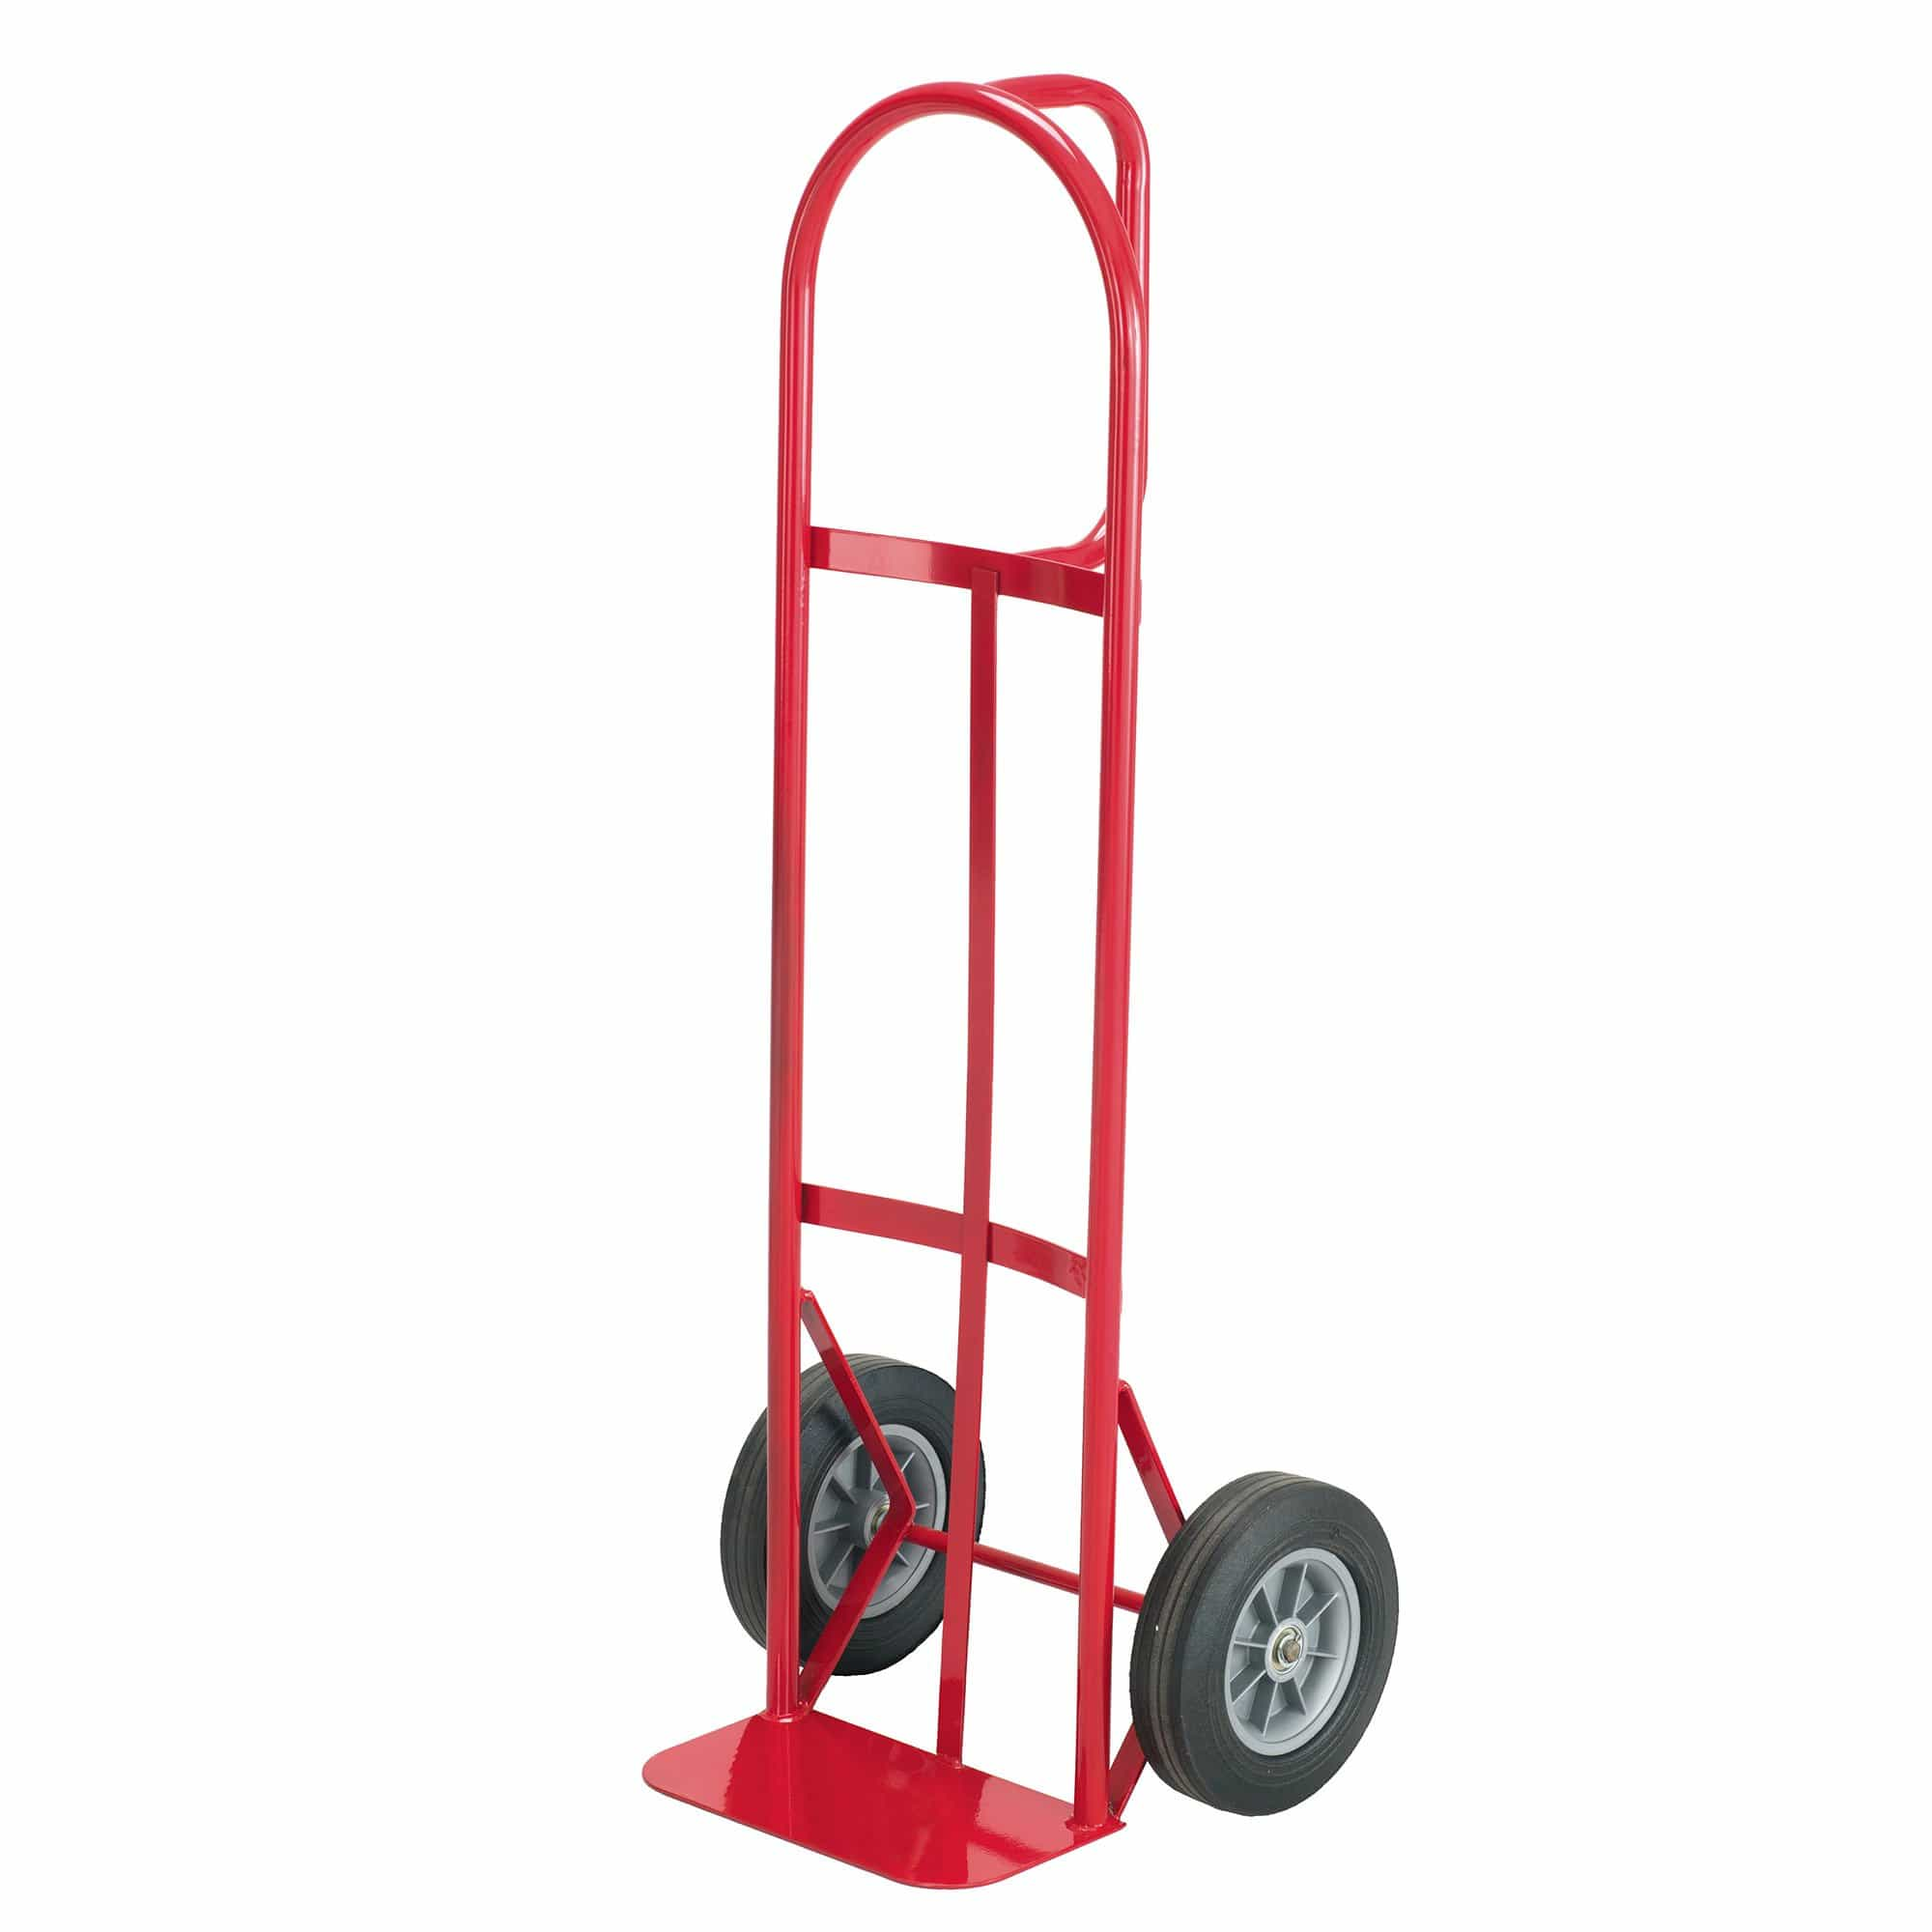 bedinhome - 4084R Safco Red powder coat finish dolly hand cart loop handle frame Truck - Safco - Steel Heavy Duty Hand Trucks